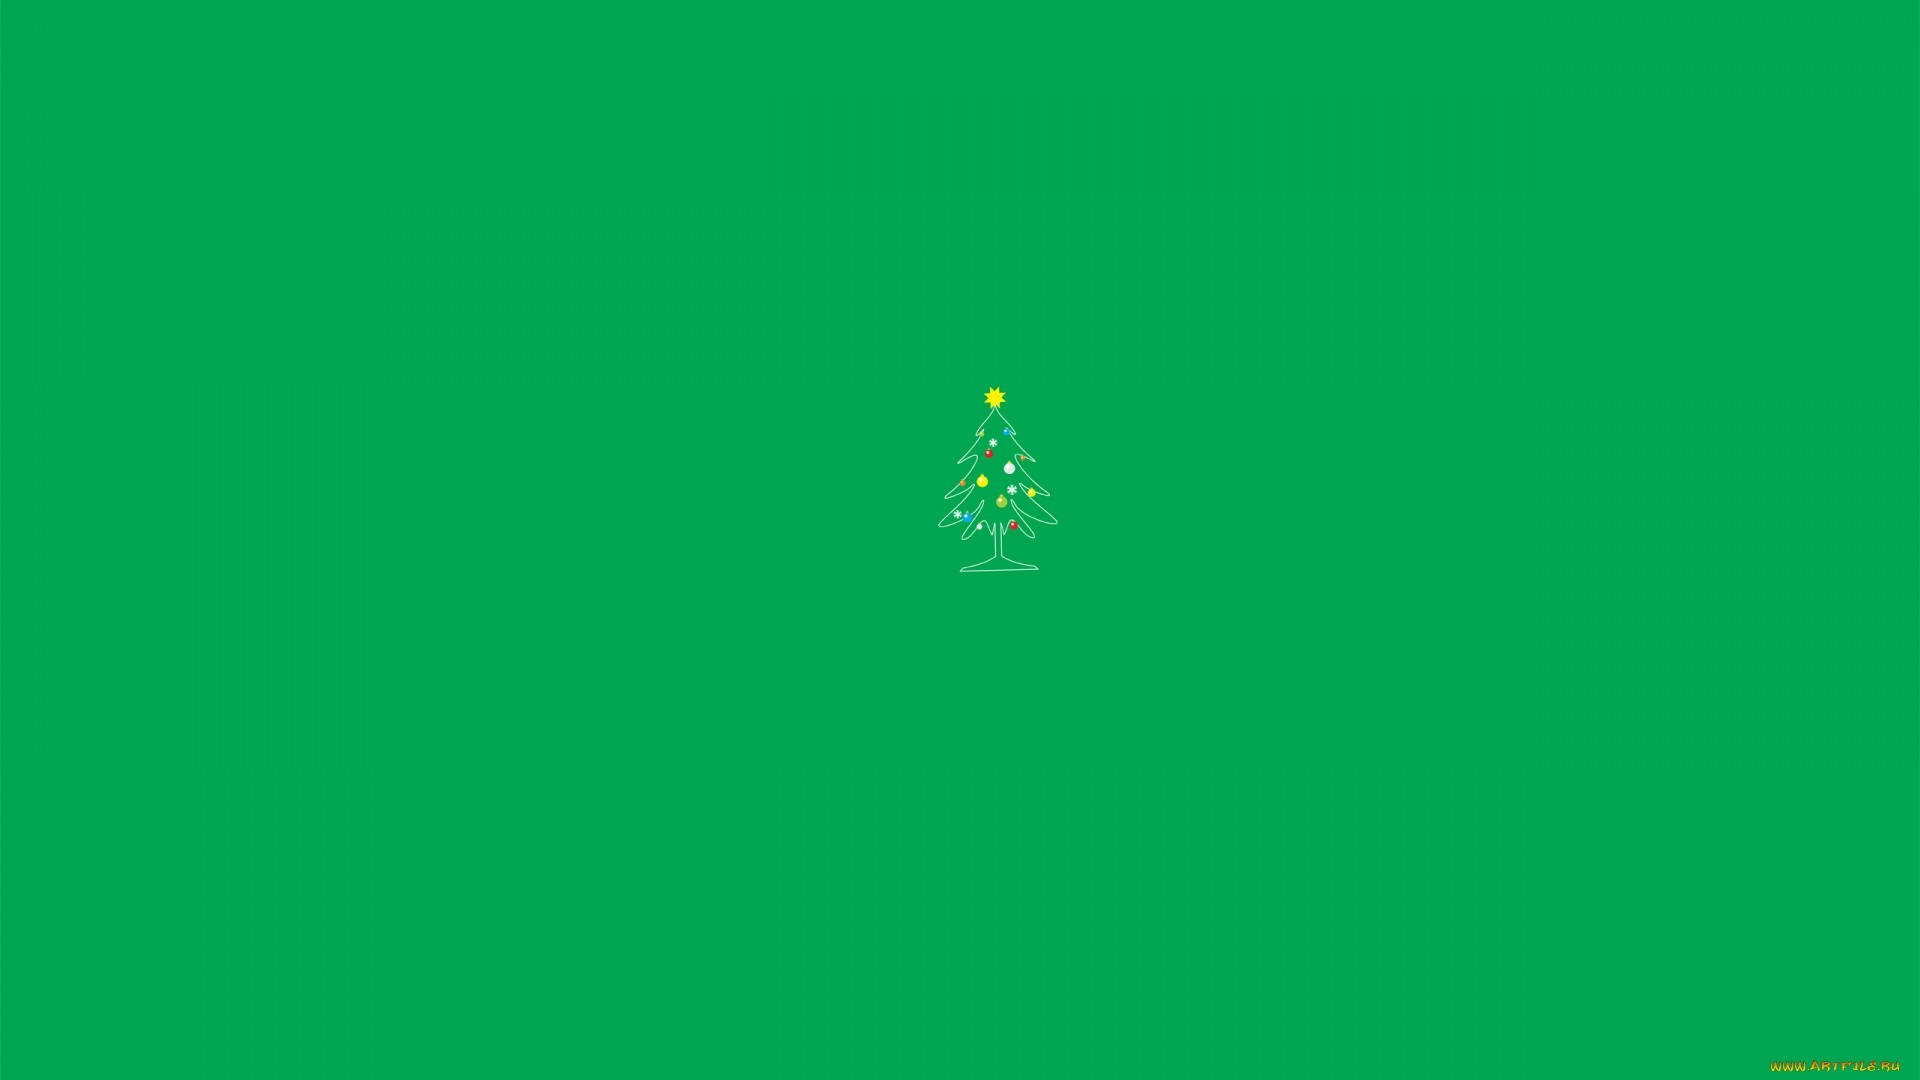 Minimalist Christmas Wallpaper Pic